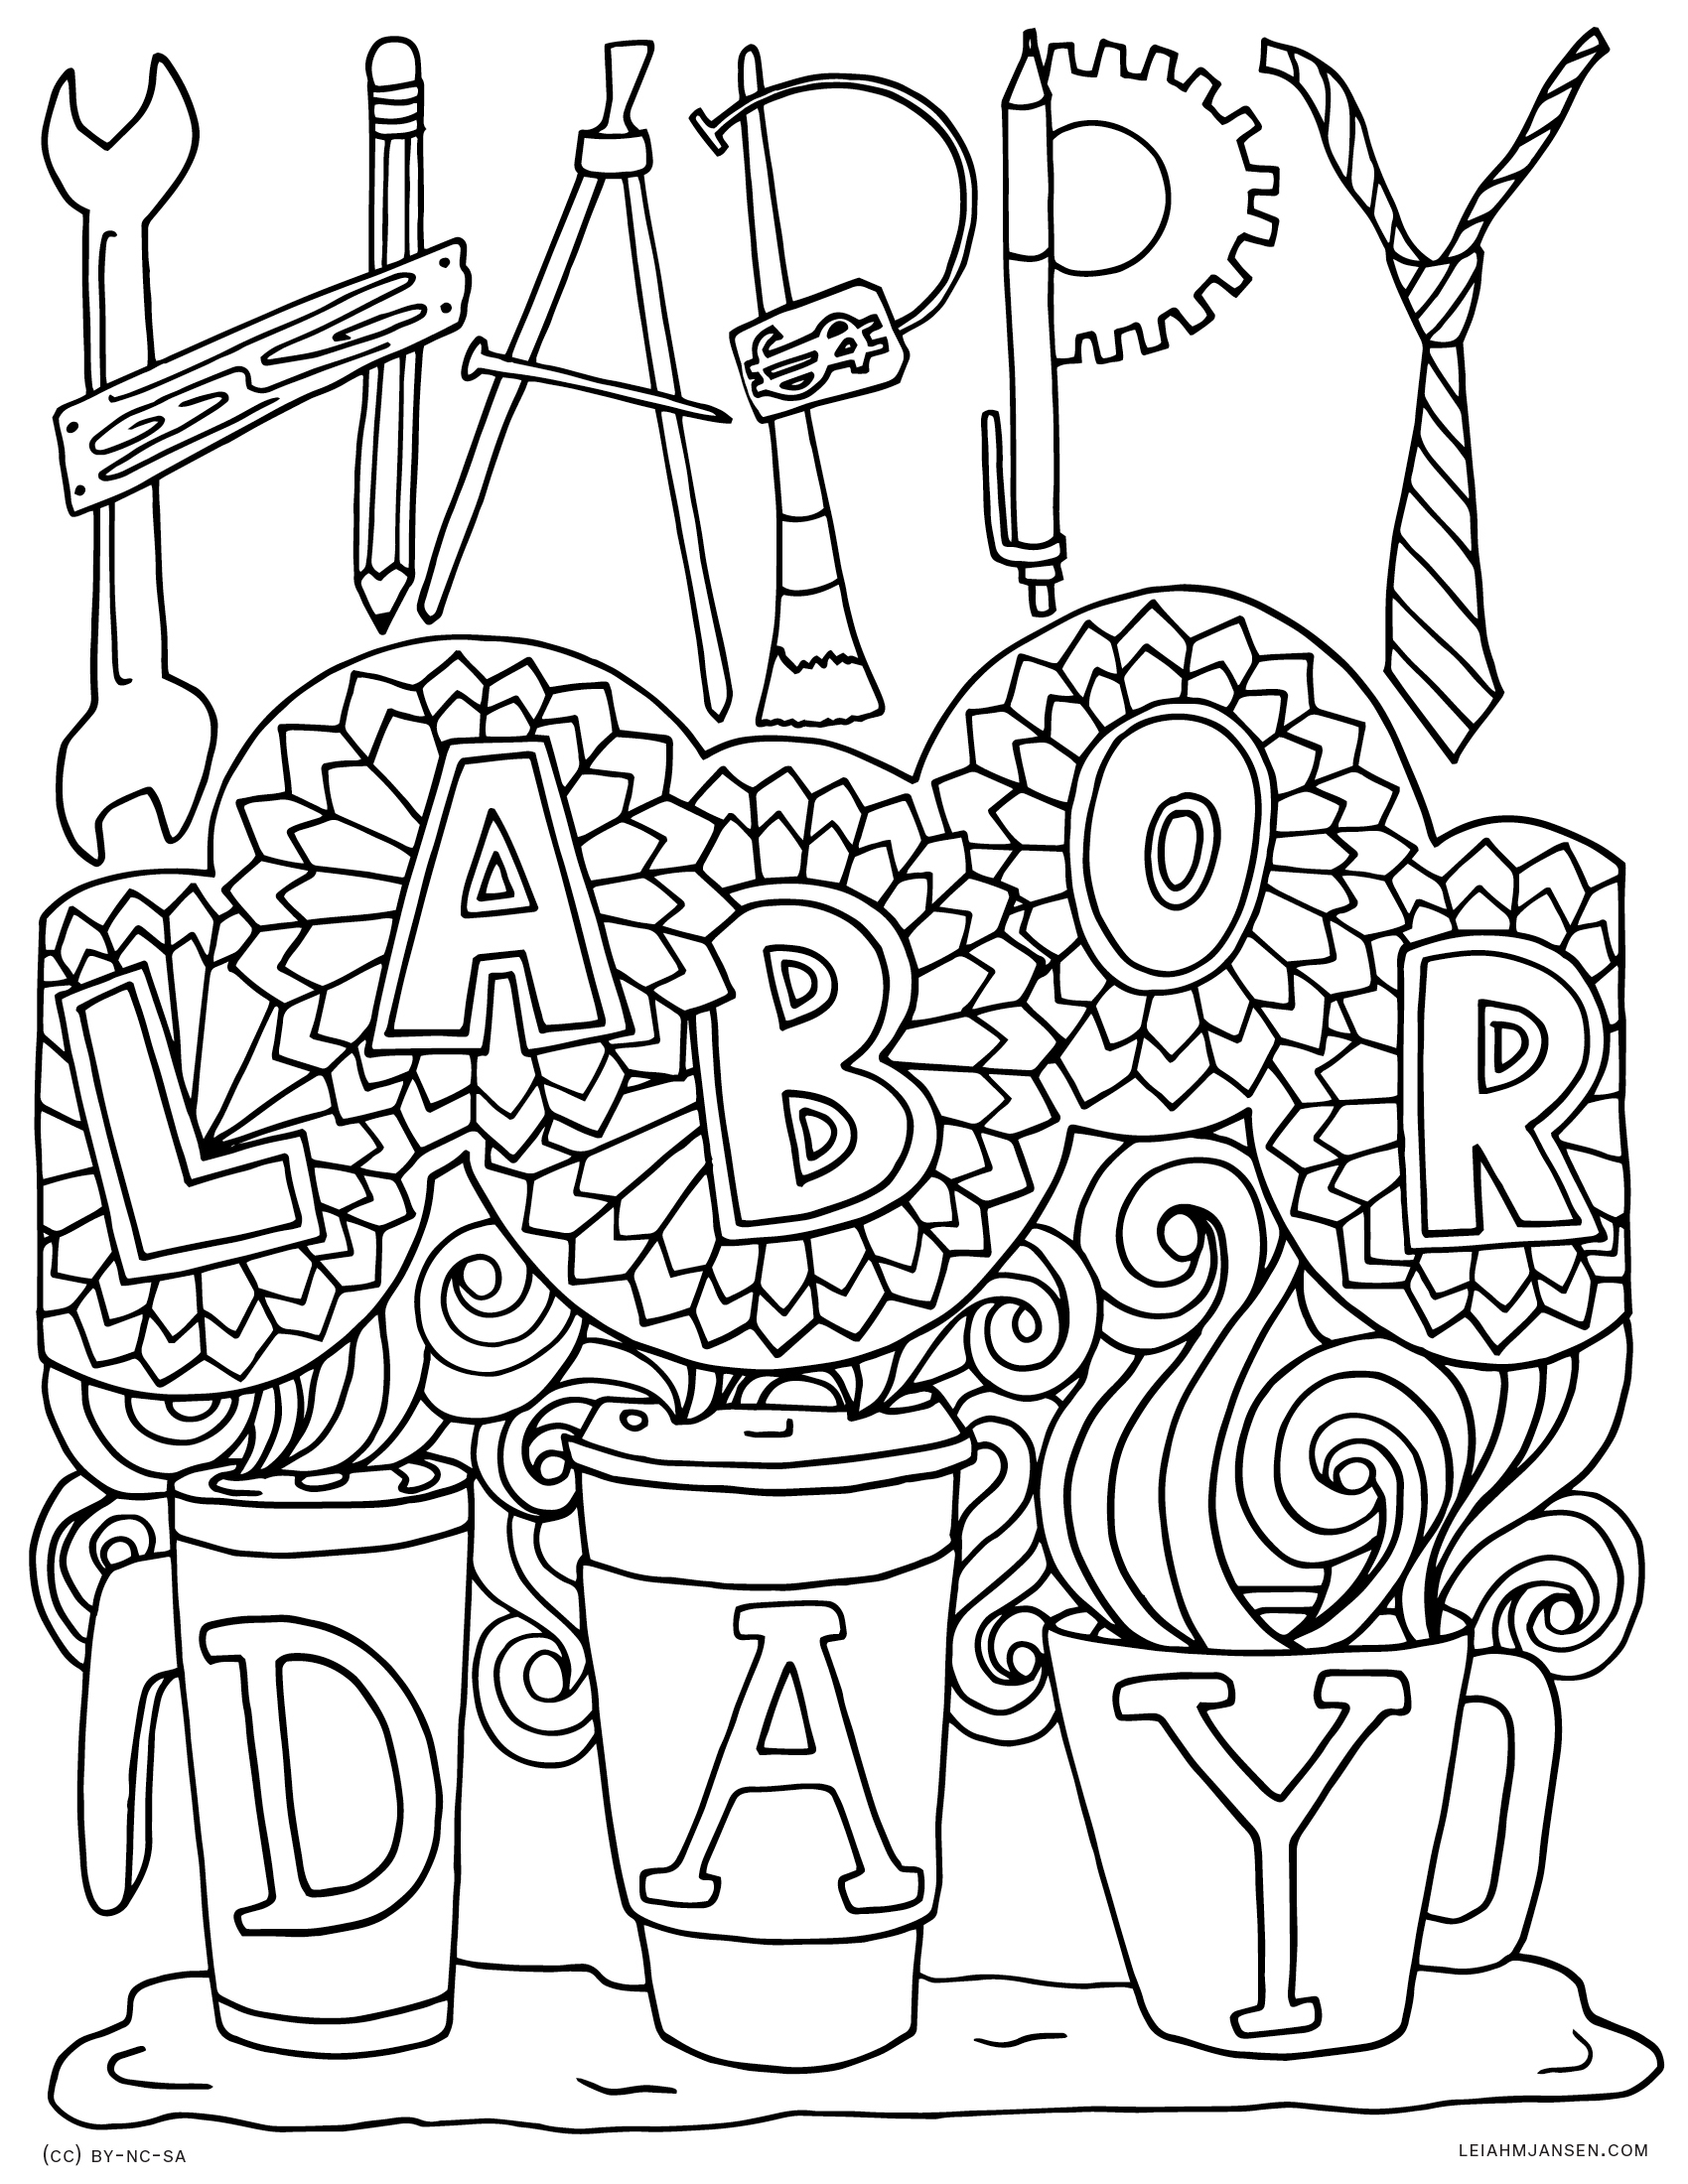 happy labor day coloring pages - photo#23